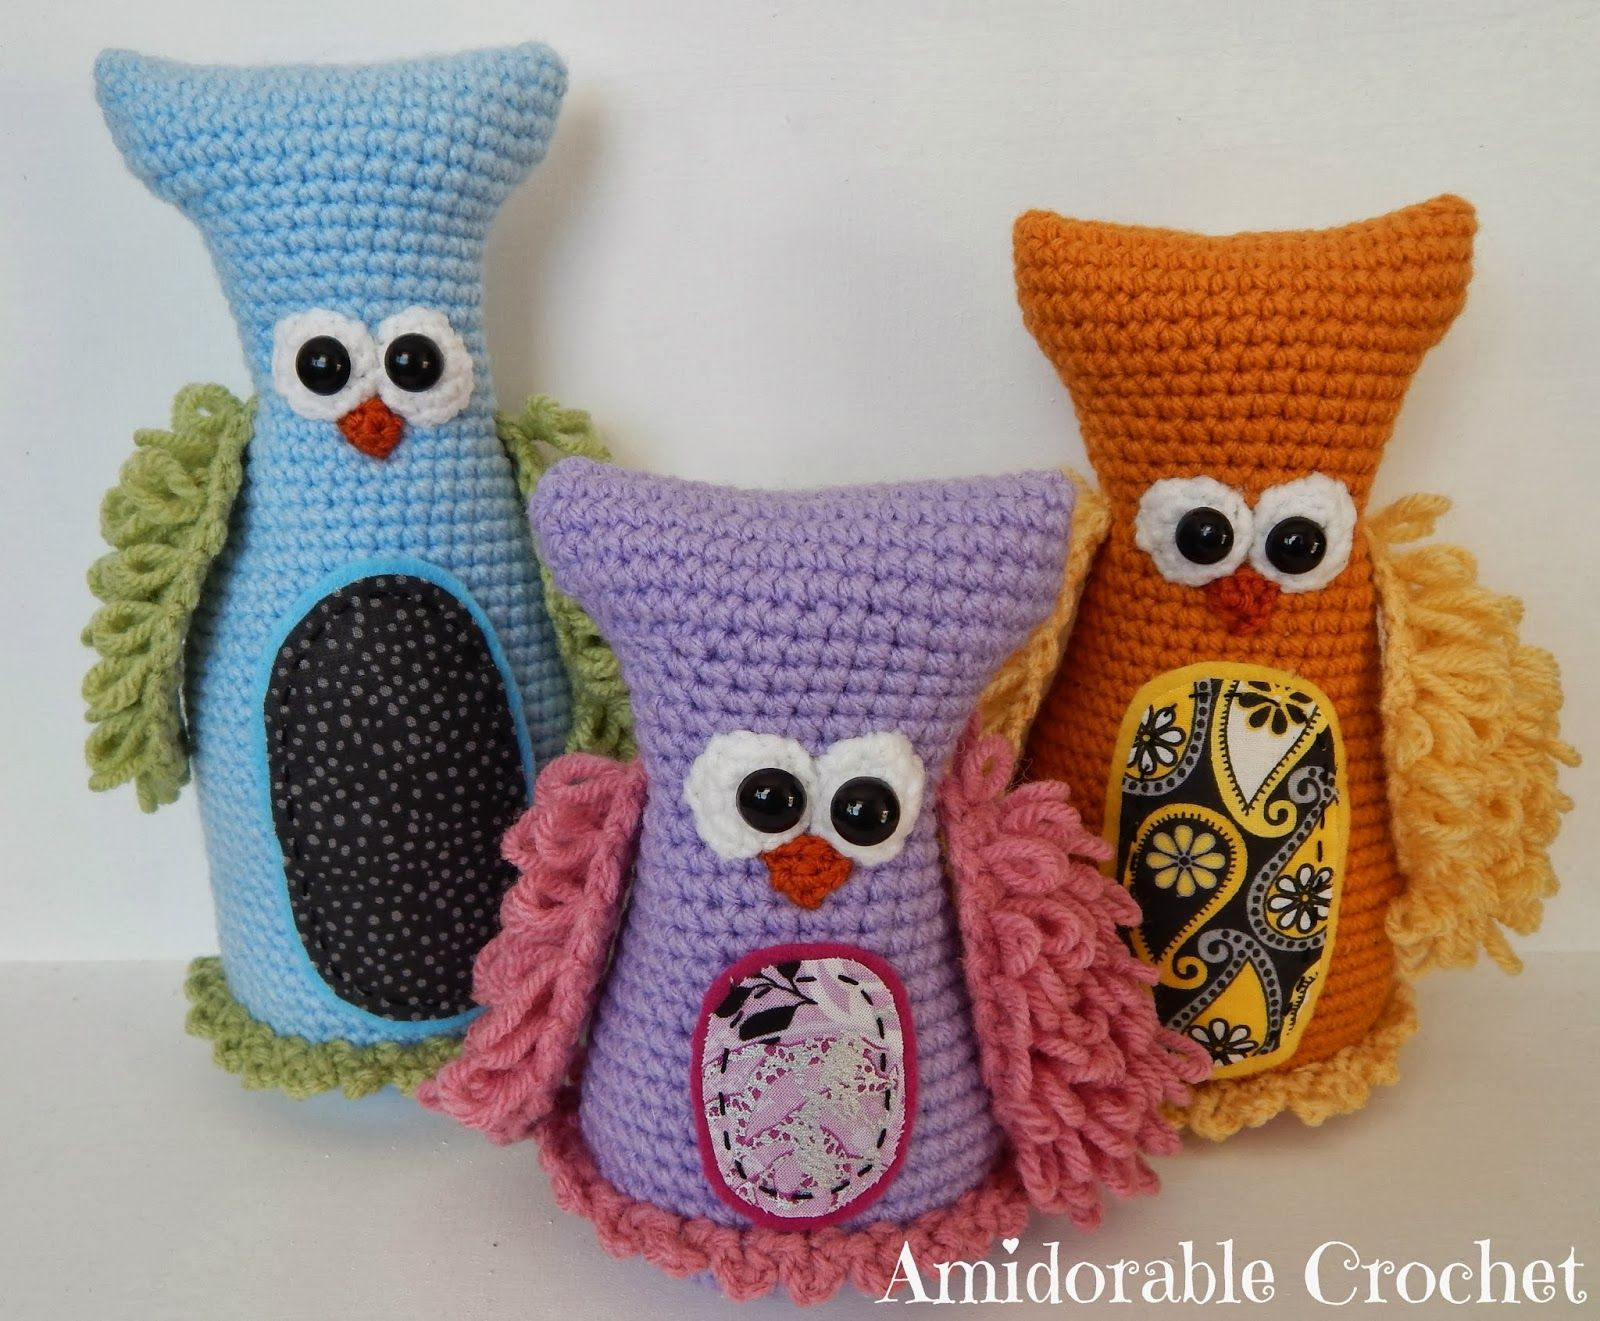 A[mi]dorable Crochet: FREE PATTERN for owls! | amigurumi | Pinterest ...